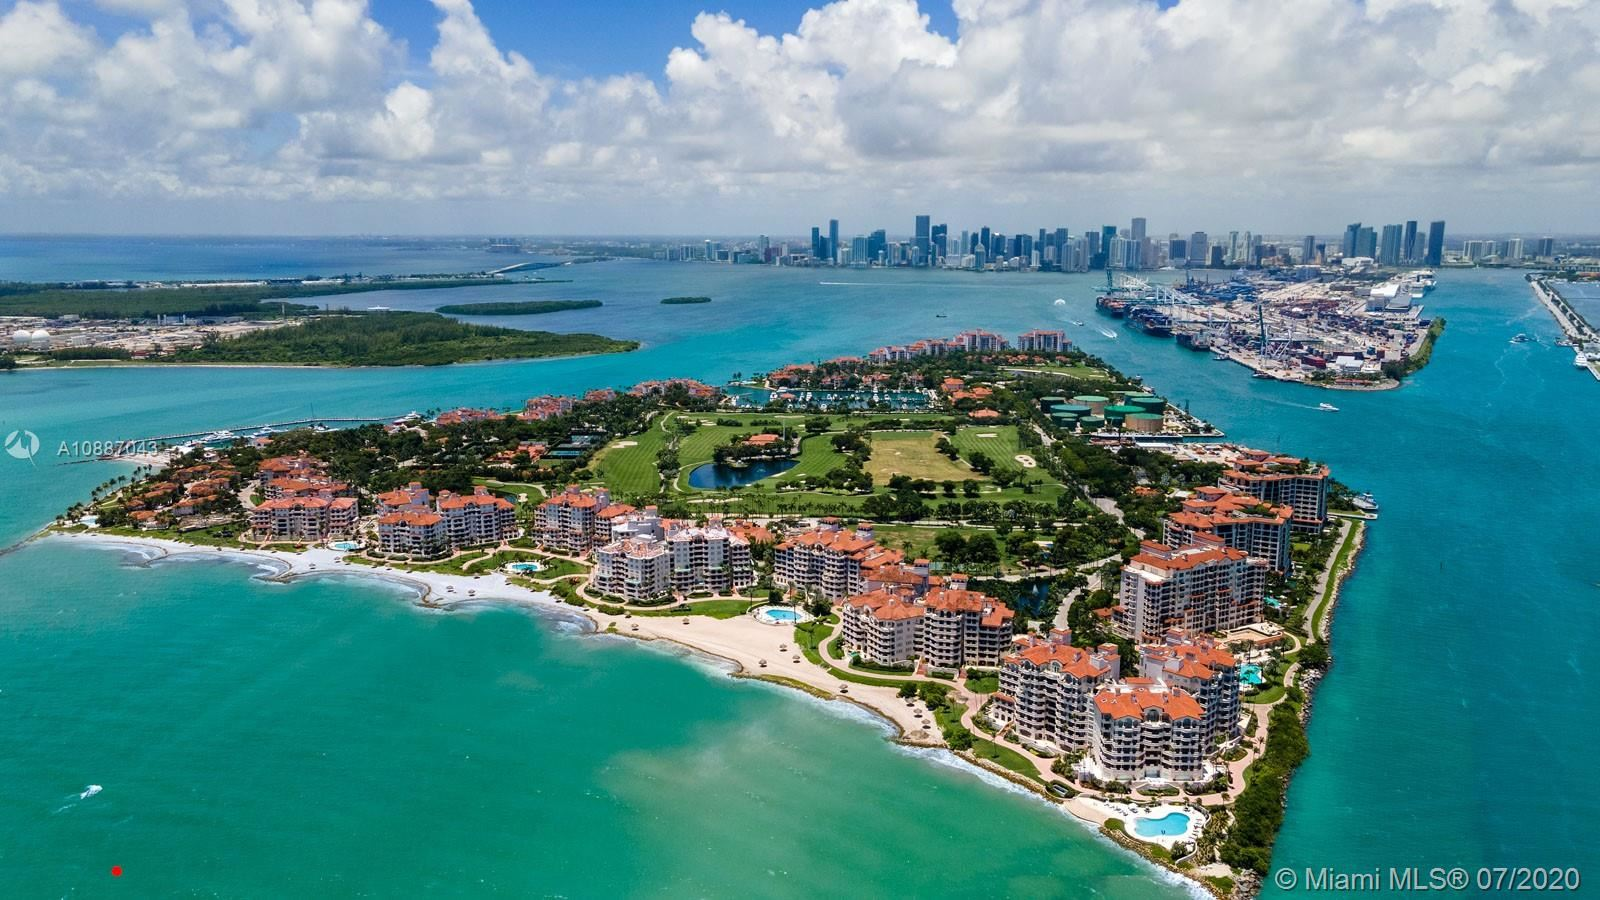 Photo 25 of Listing MLS a10887043 in 7764 Fisher Island Dr #7764 Miami Beach FL 33109